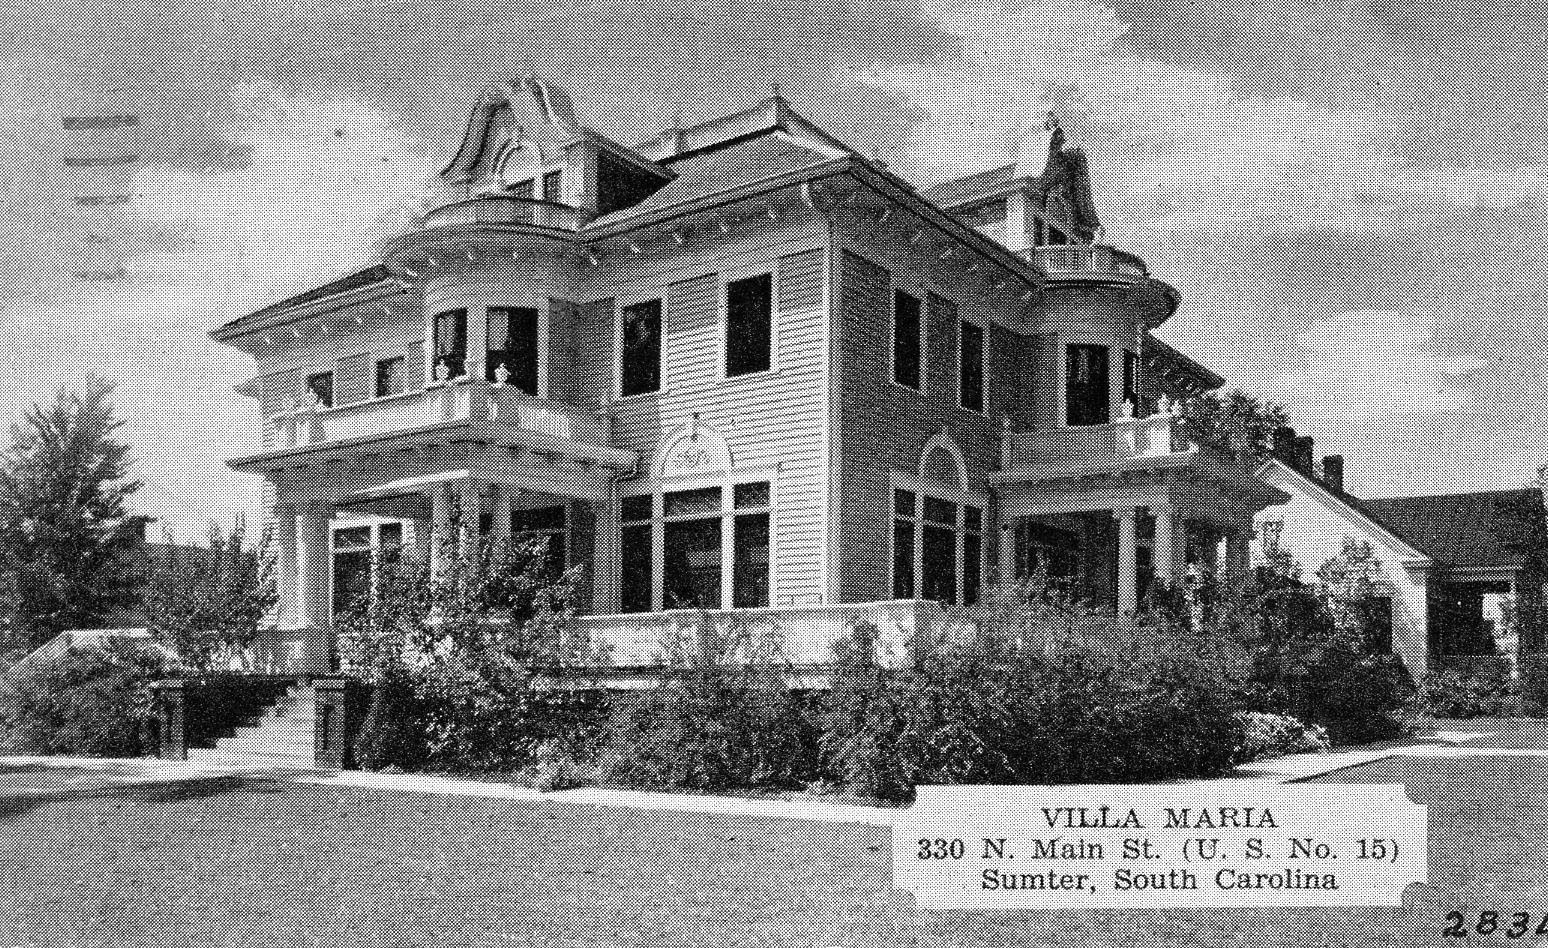 Villa Maria was located on North Main Street. It once served as a tourist lodge.